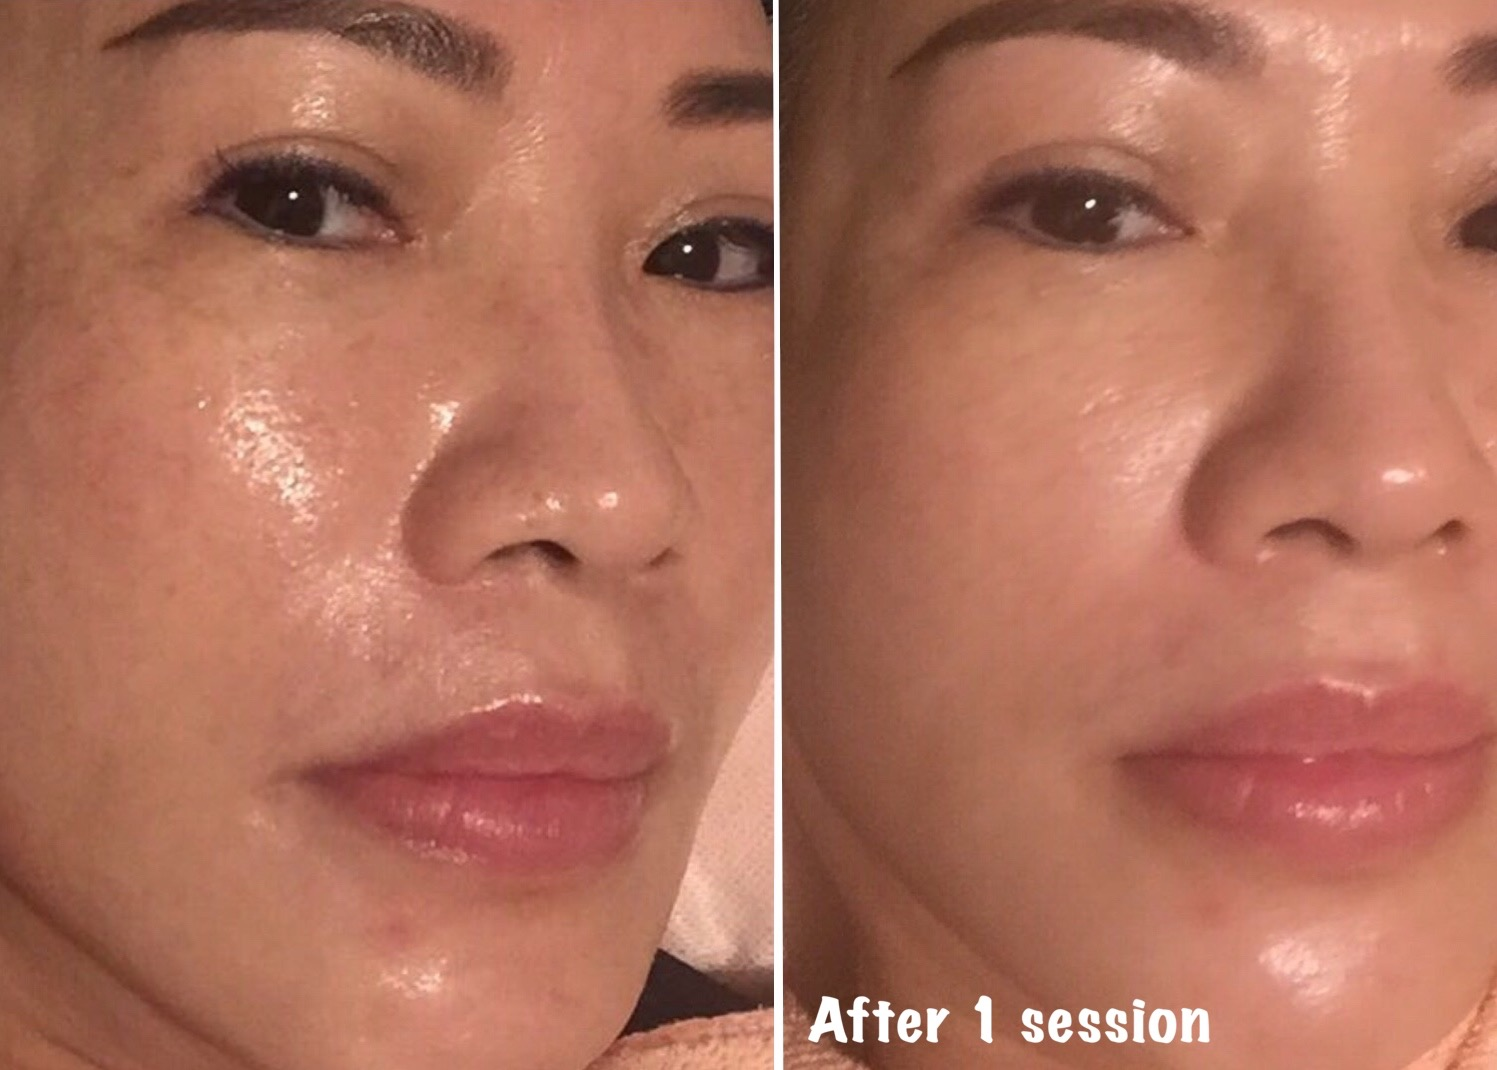 What Is Baby Glow Treatment